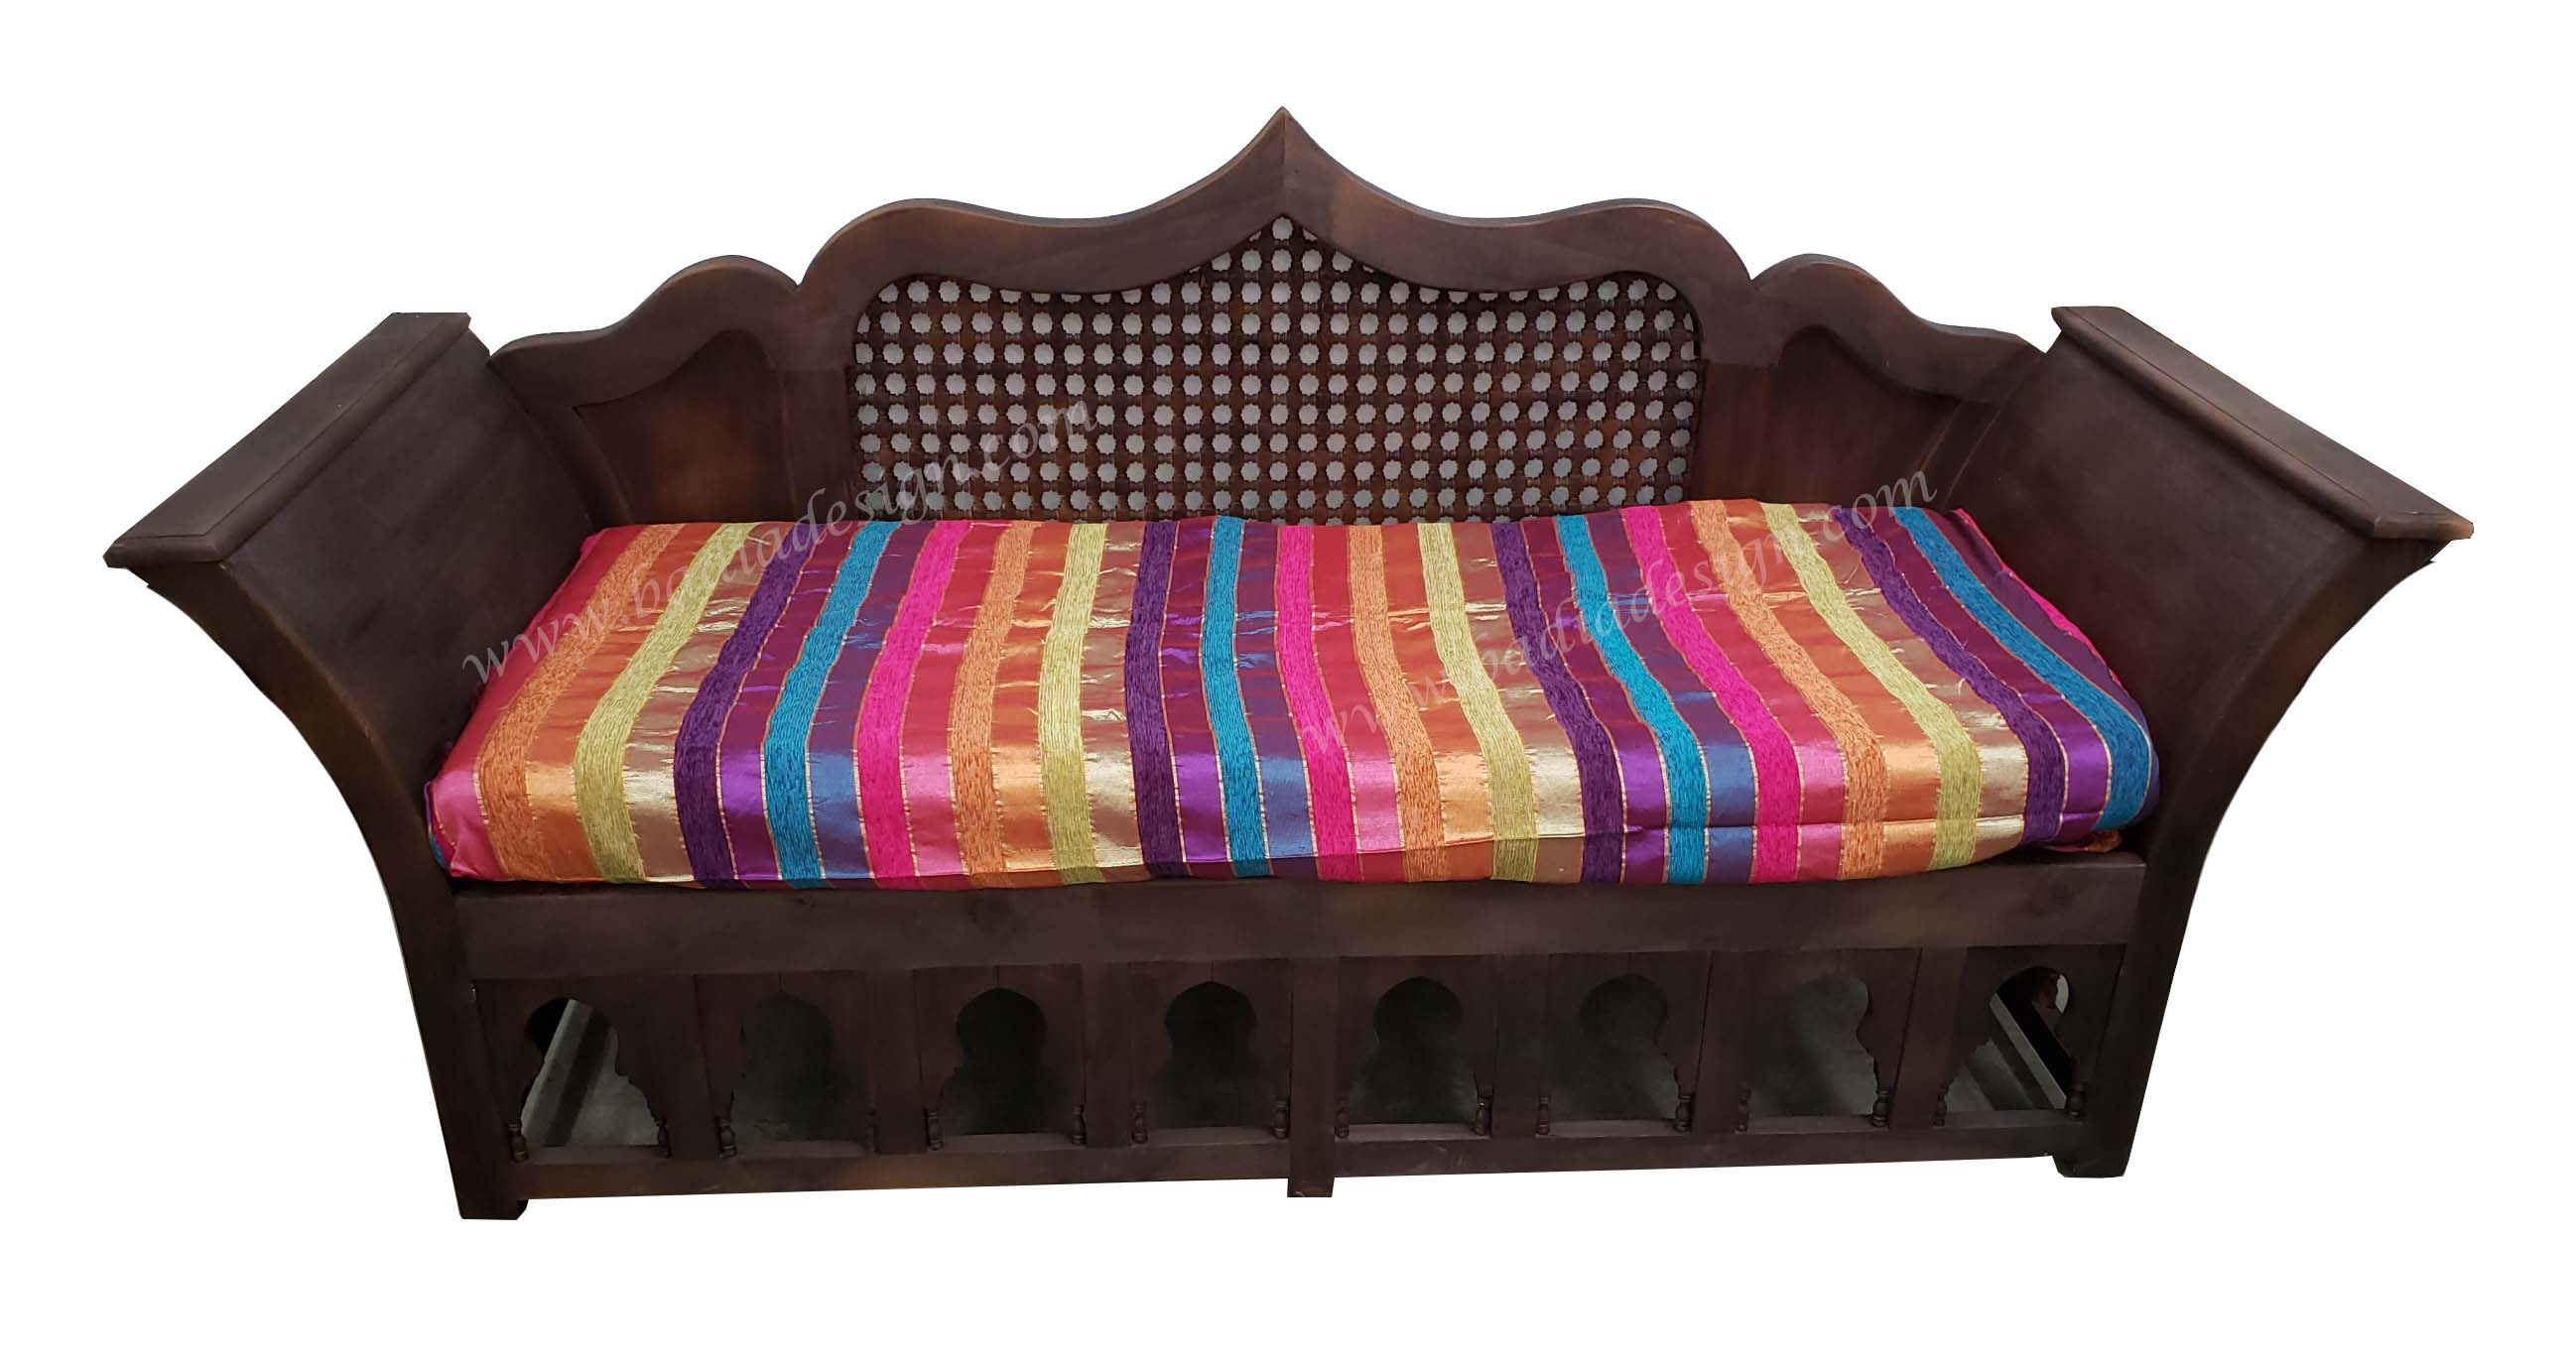 moroccan-unstained-hand-carved-wooden-sofa-cw-b014-1.jpg